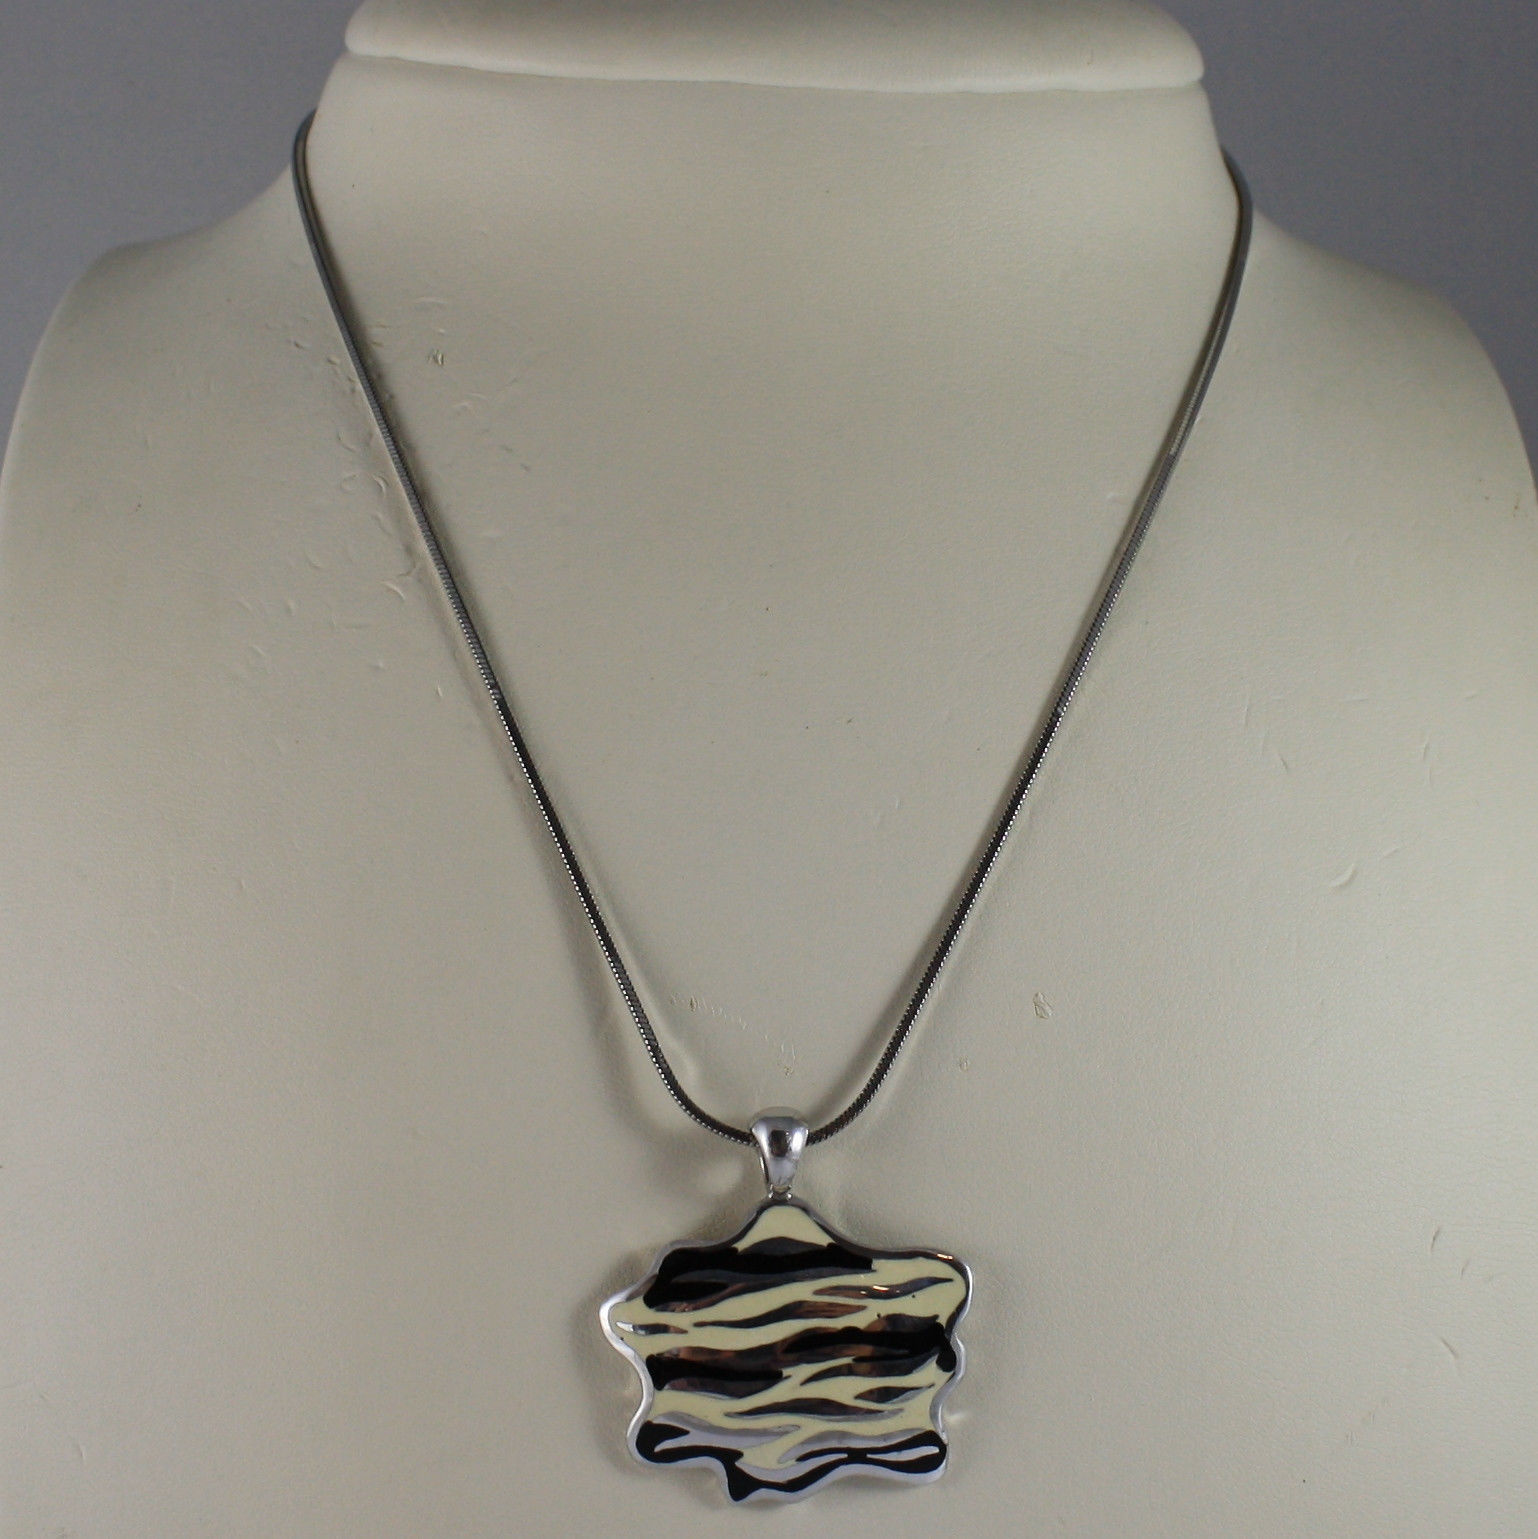 .925 SILVER RHODIUM NECKLACE WITH GLAZED PLATE